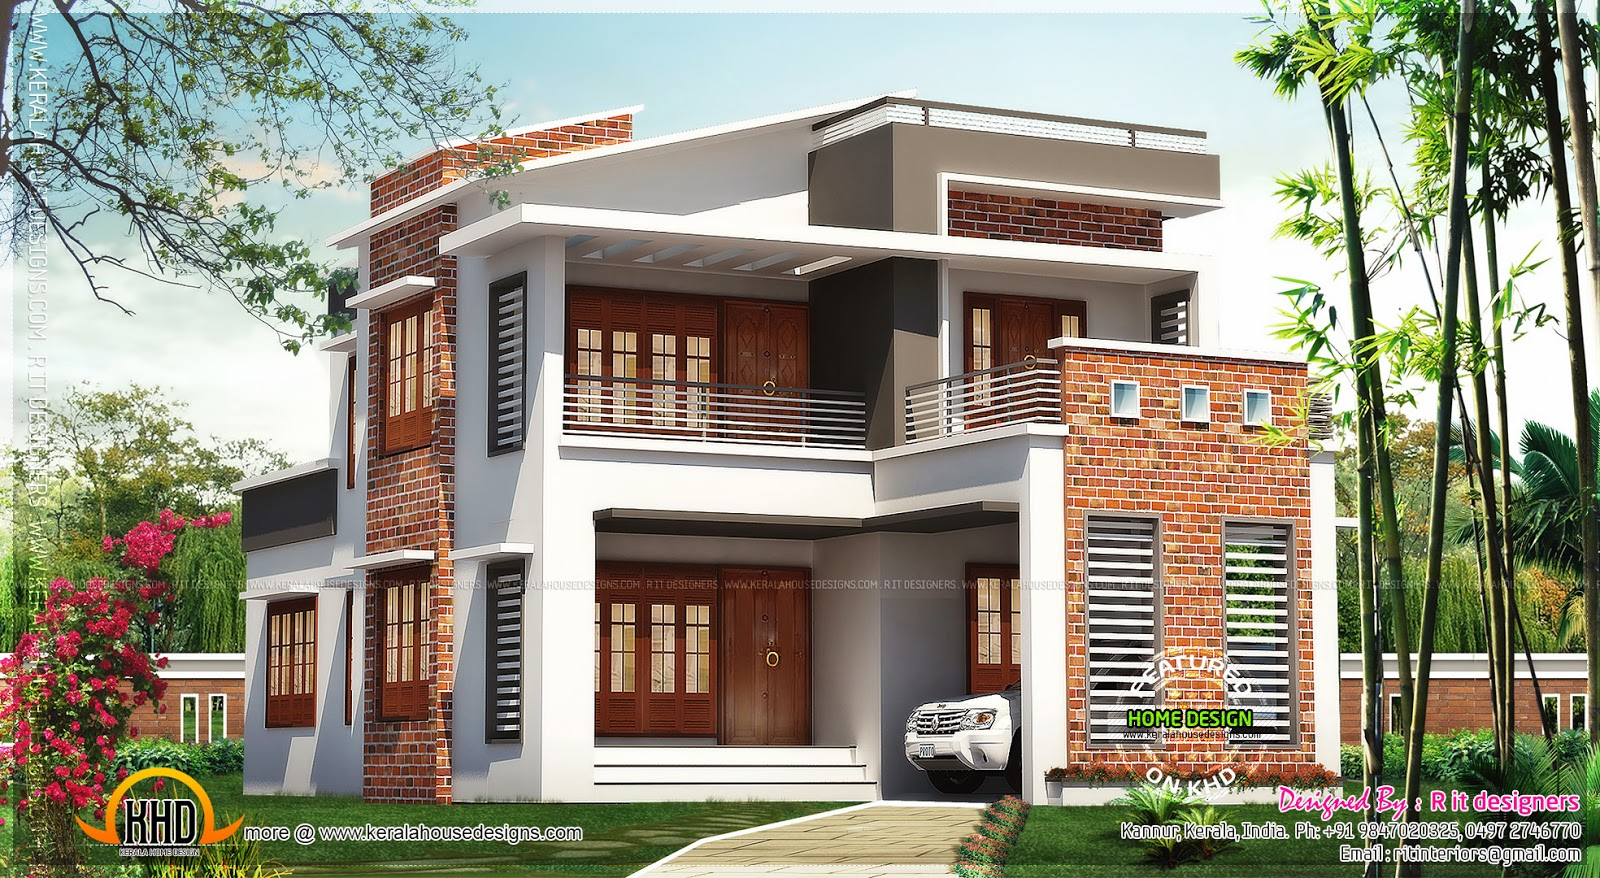 Brick mix house exterior design kerala home design and for House front design